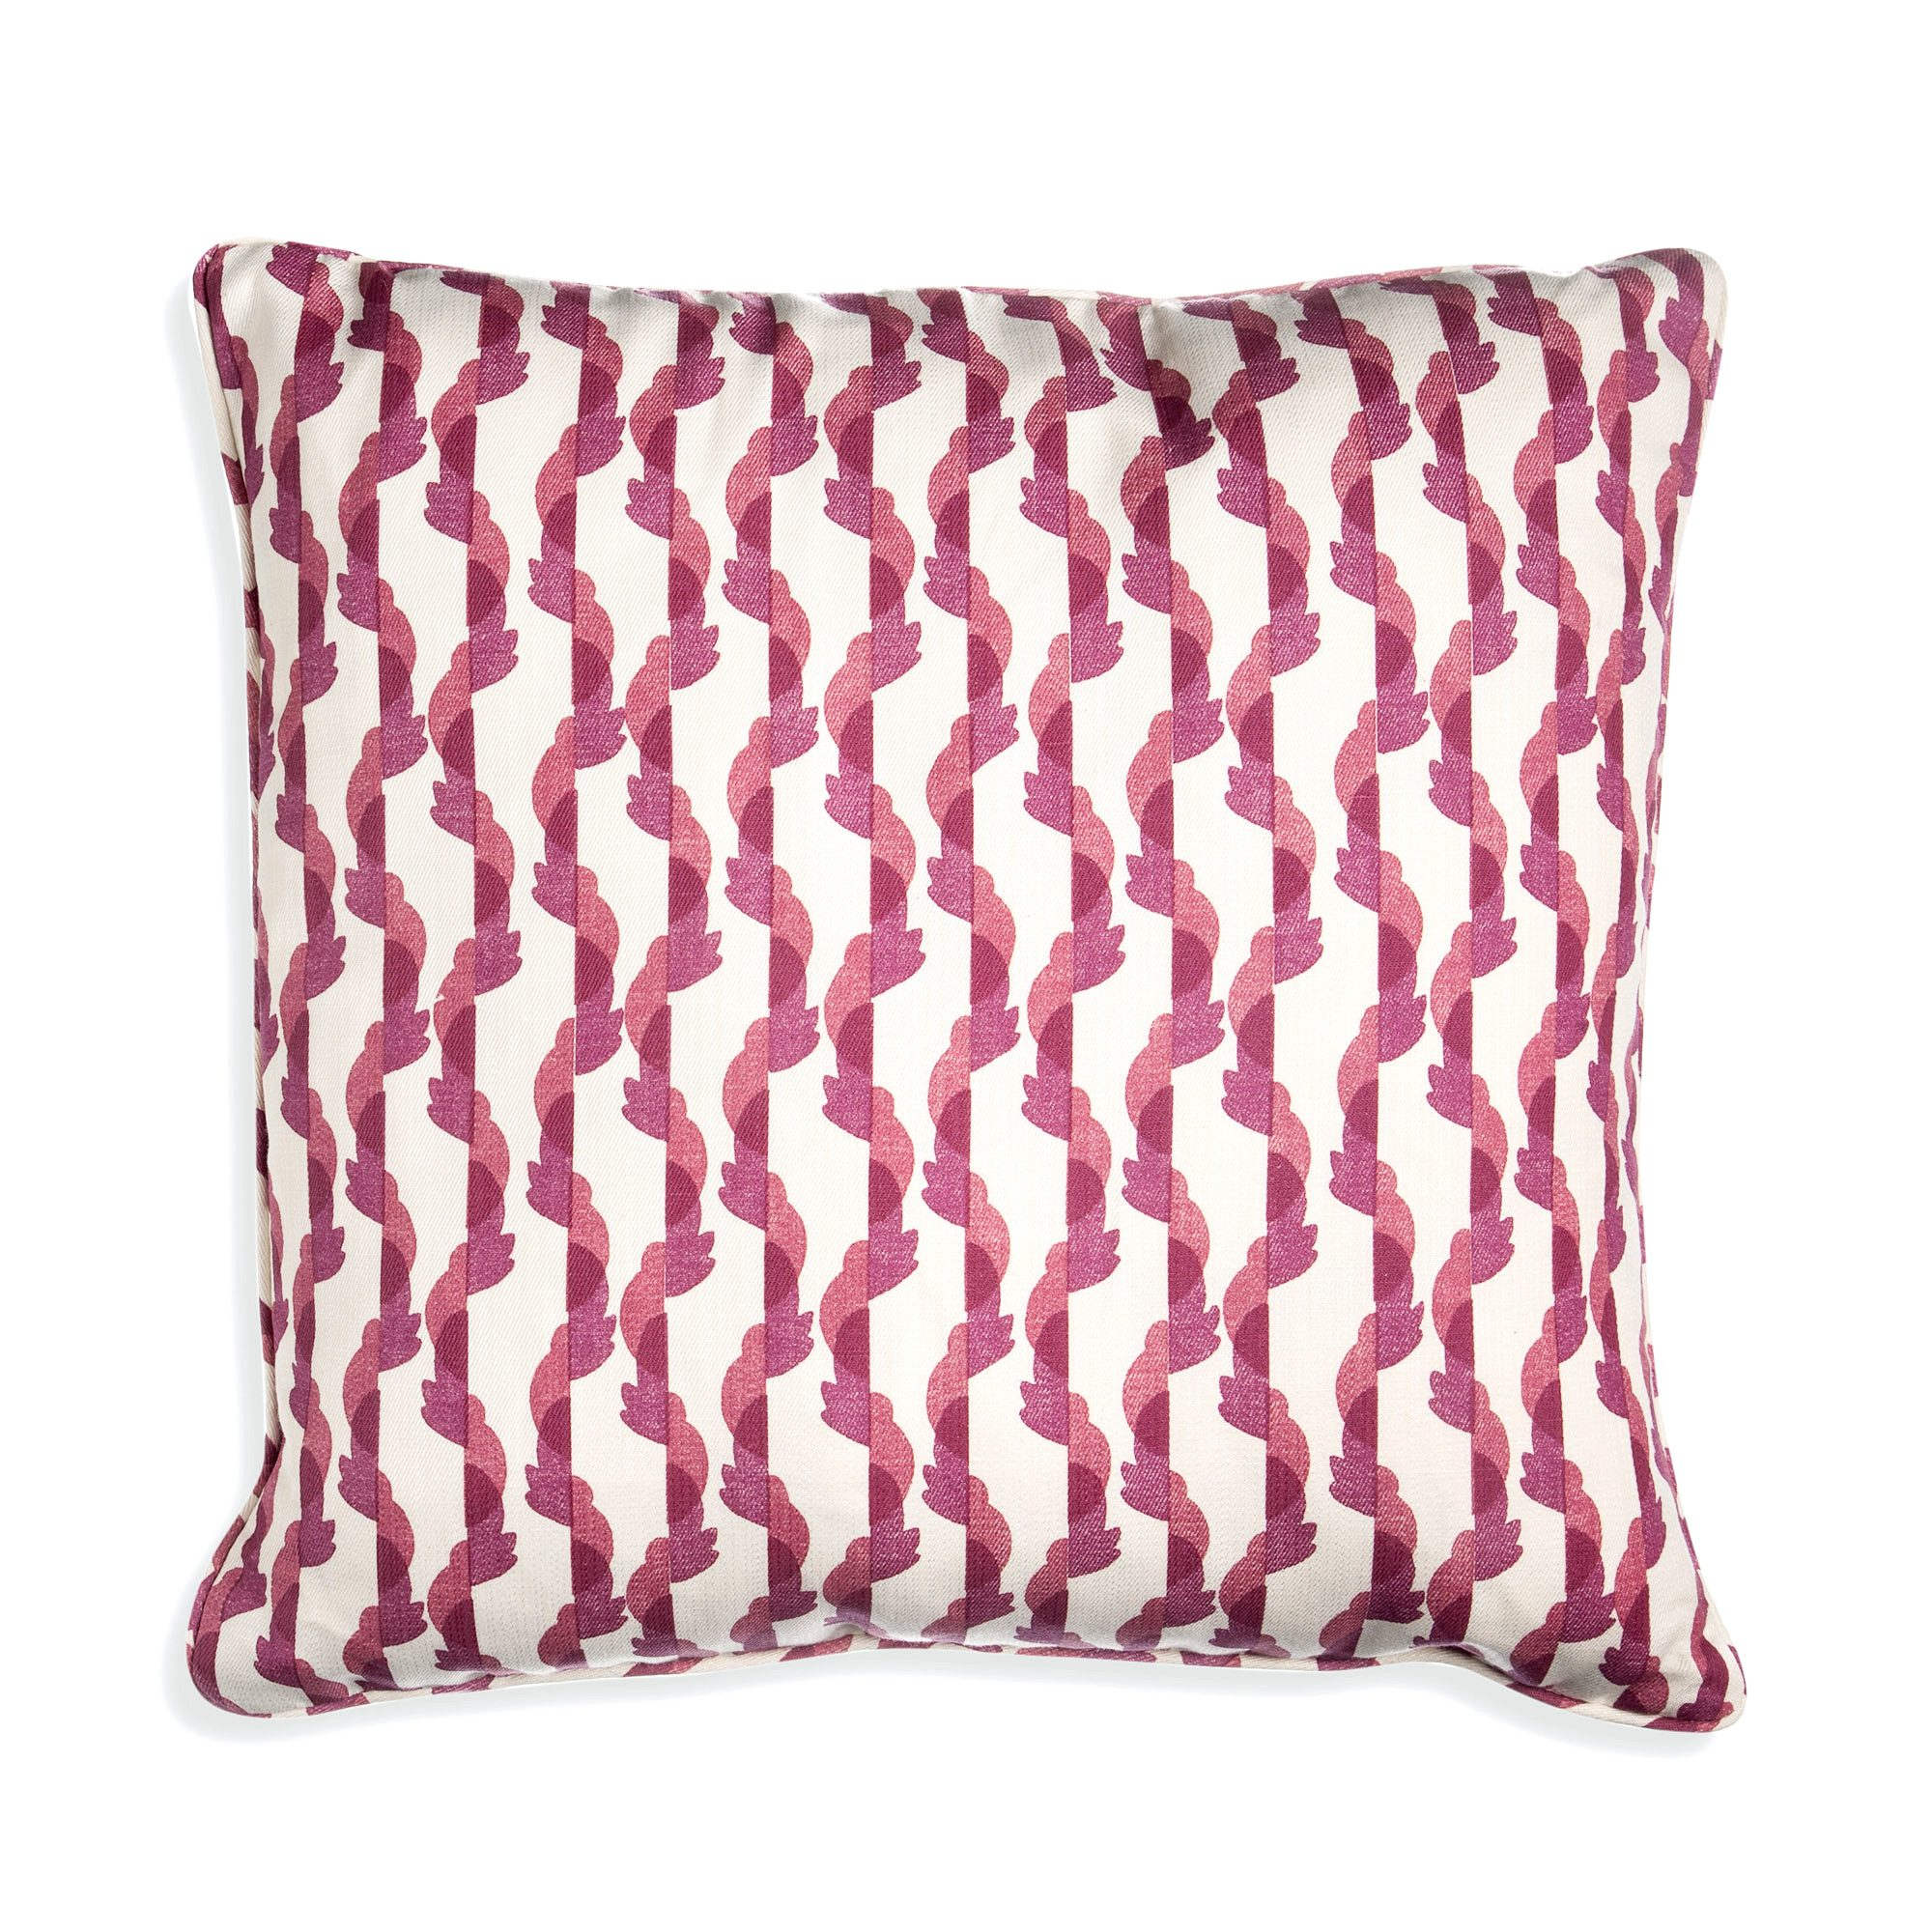 Small Square Cushion in Pink Botany